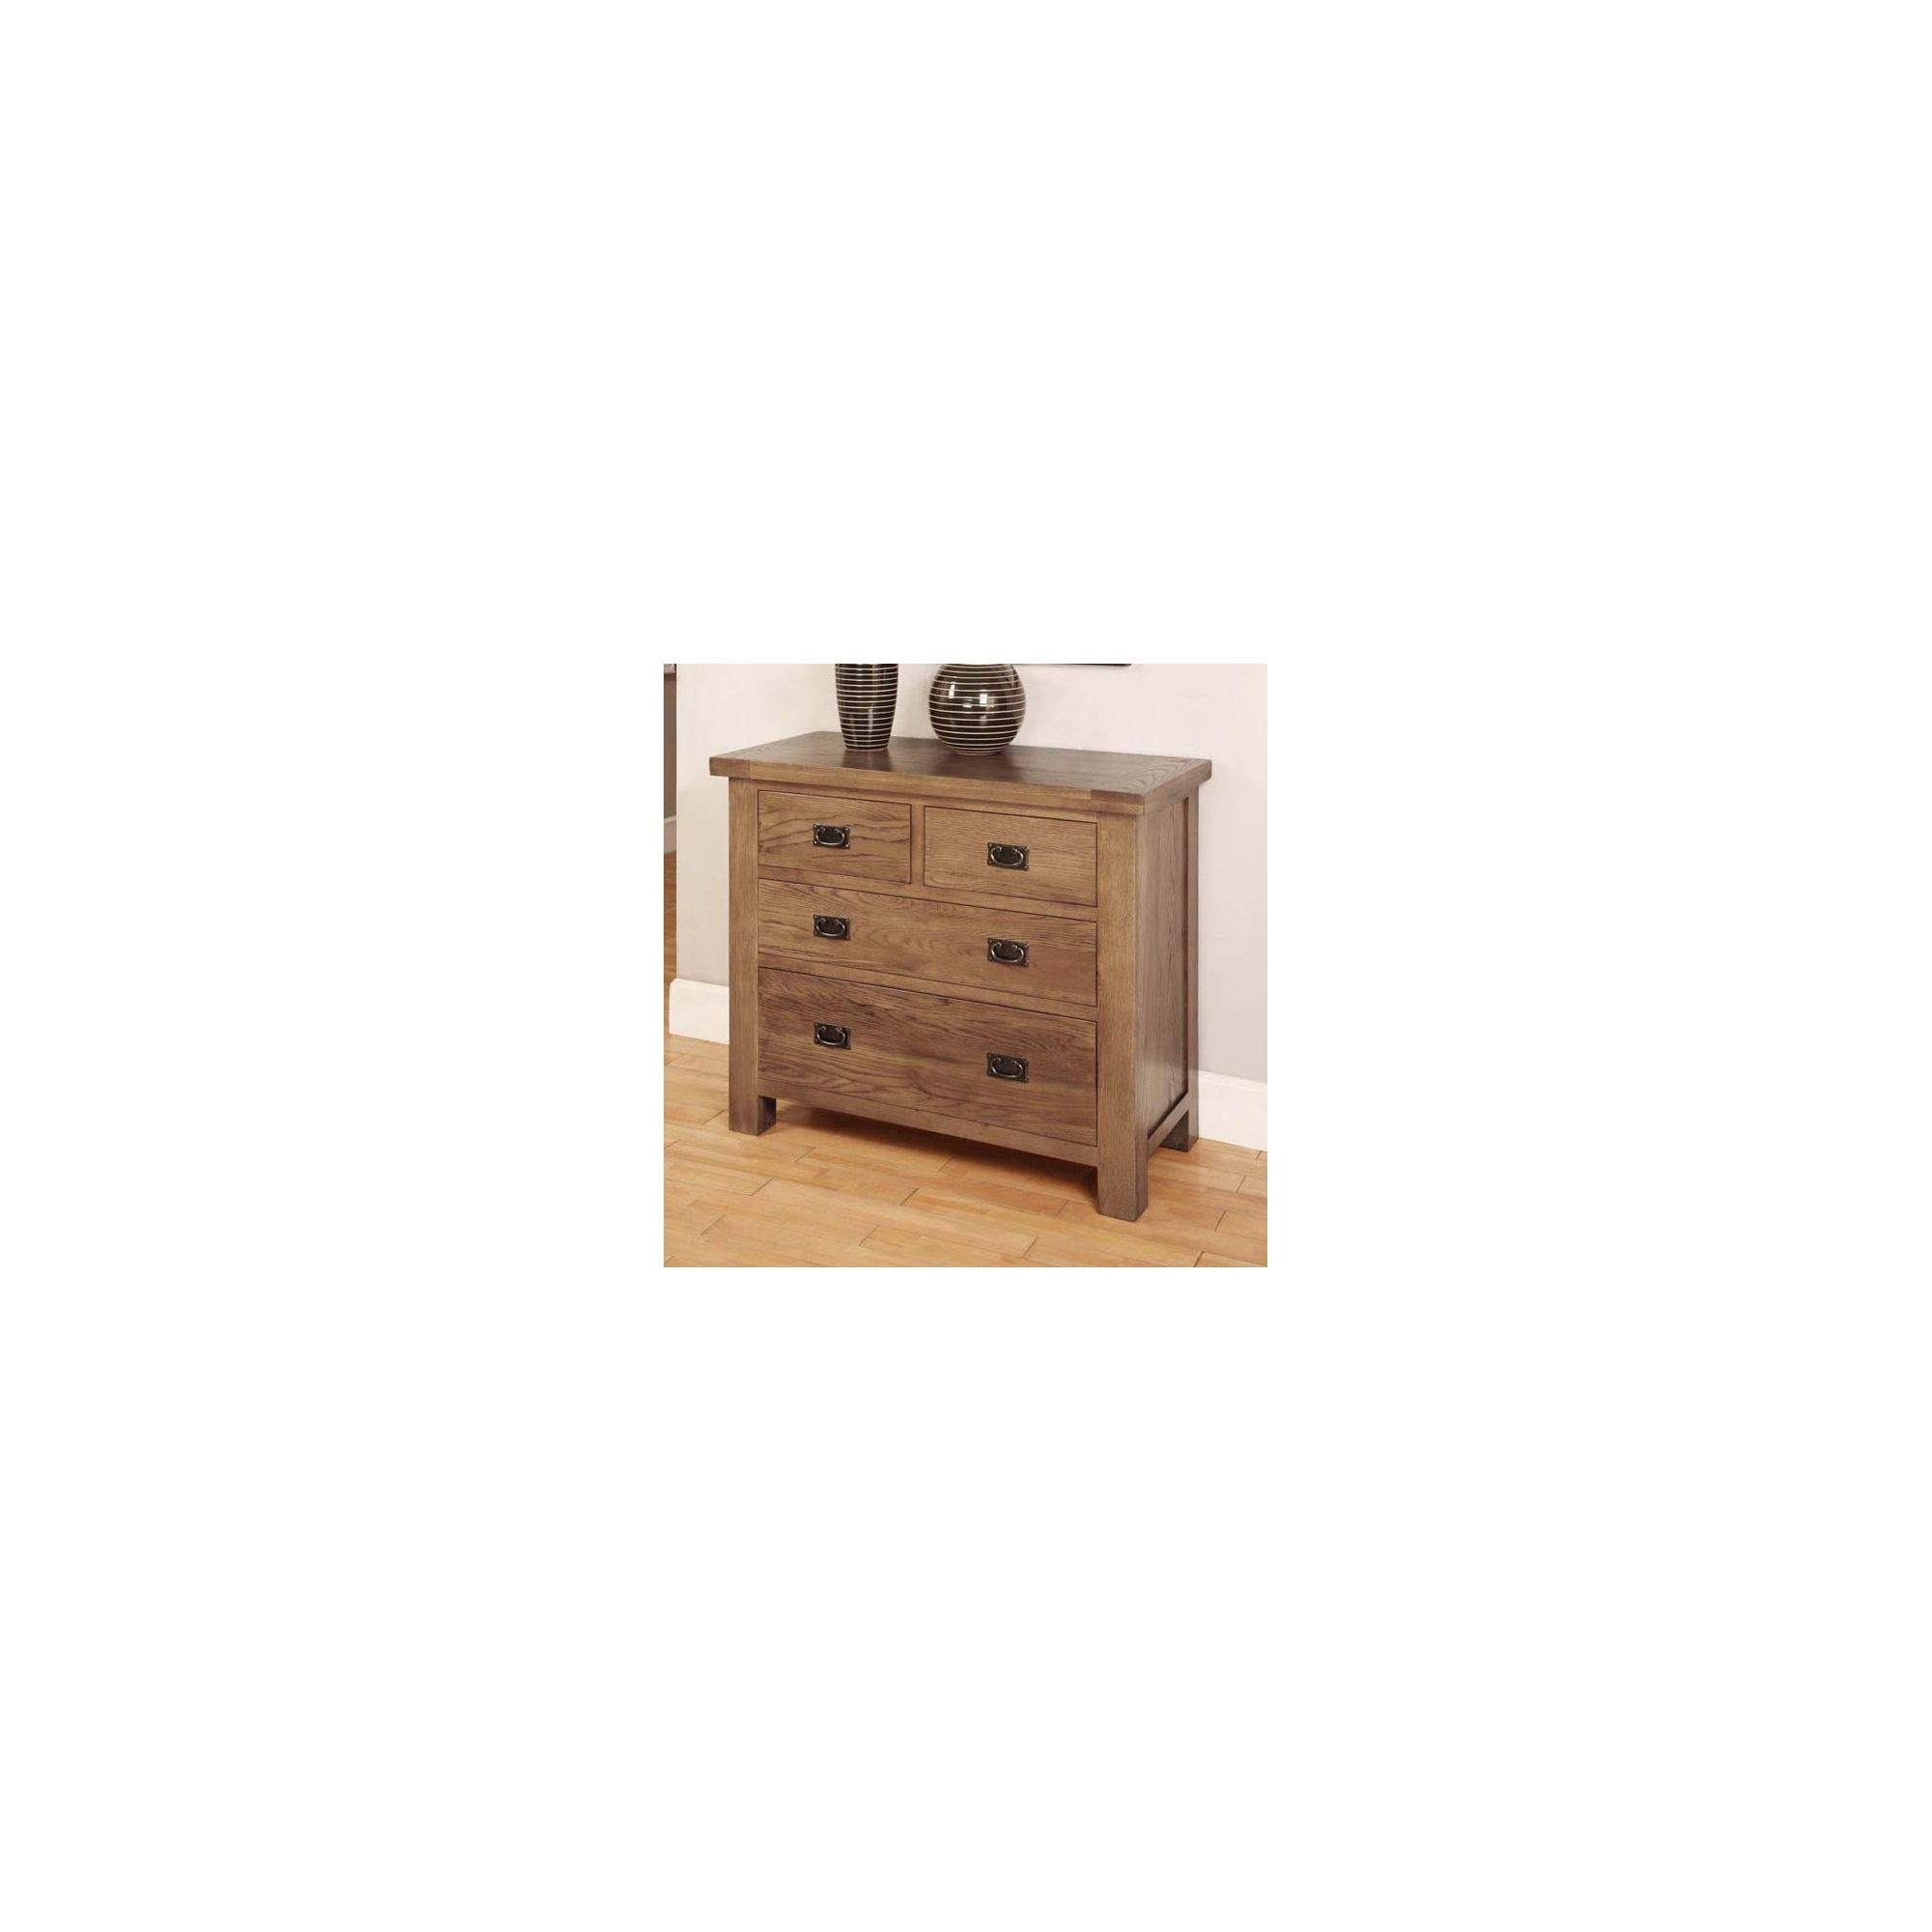 Hawkshead Brooklyn Four Drawer Chest in Rich Patina at Tesco Direct